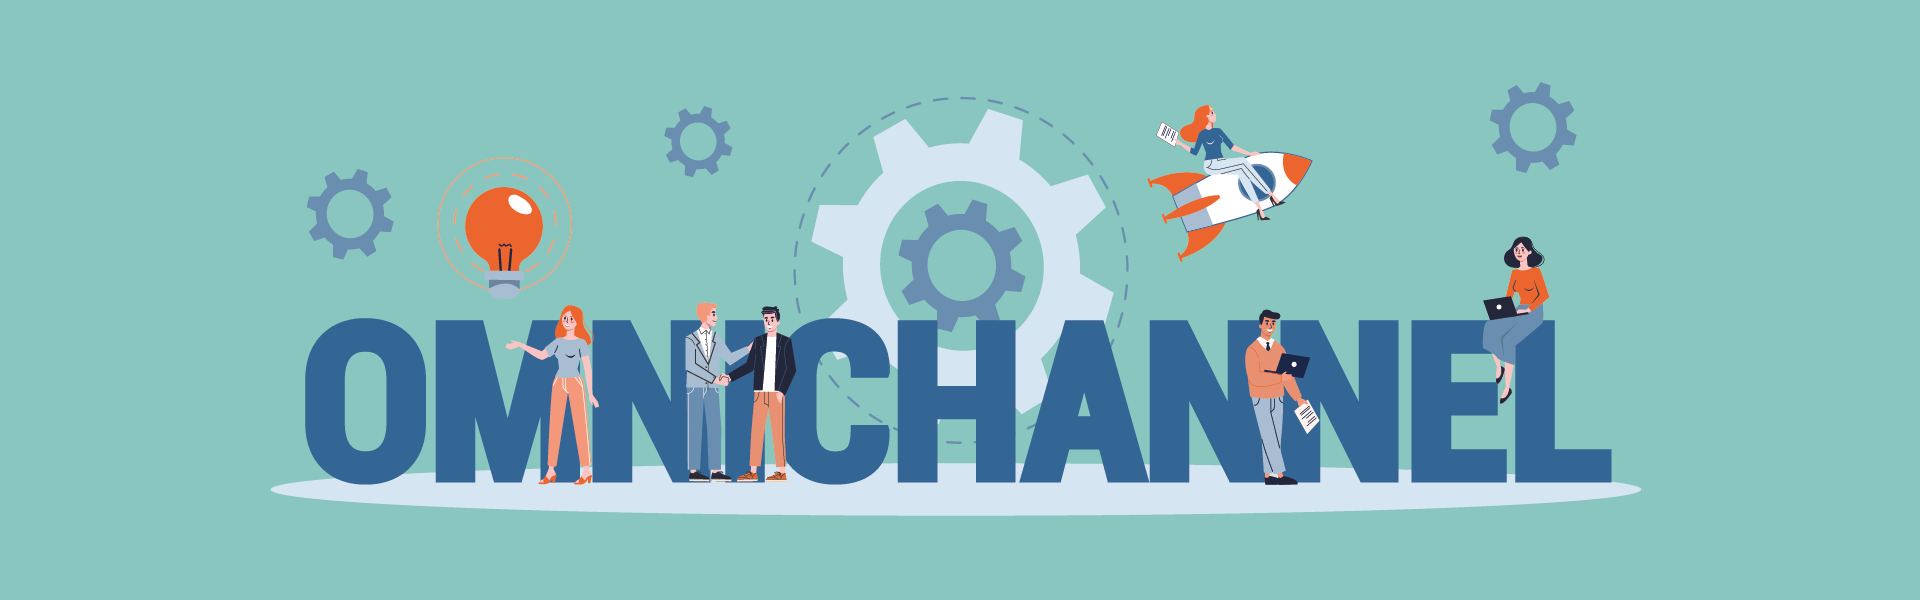 5 Ways to Improve Omnichannel Customer Experience